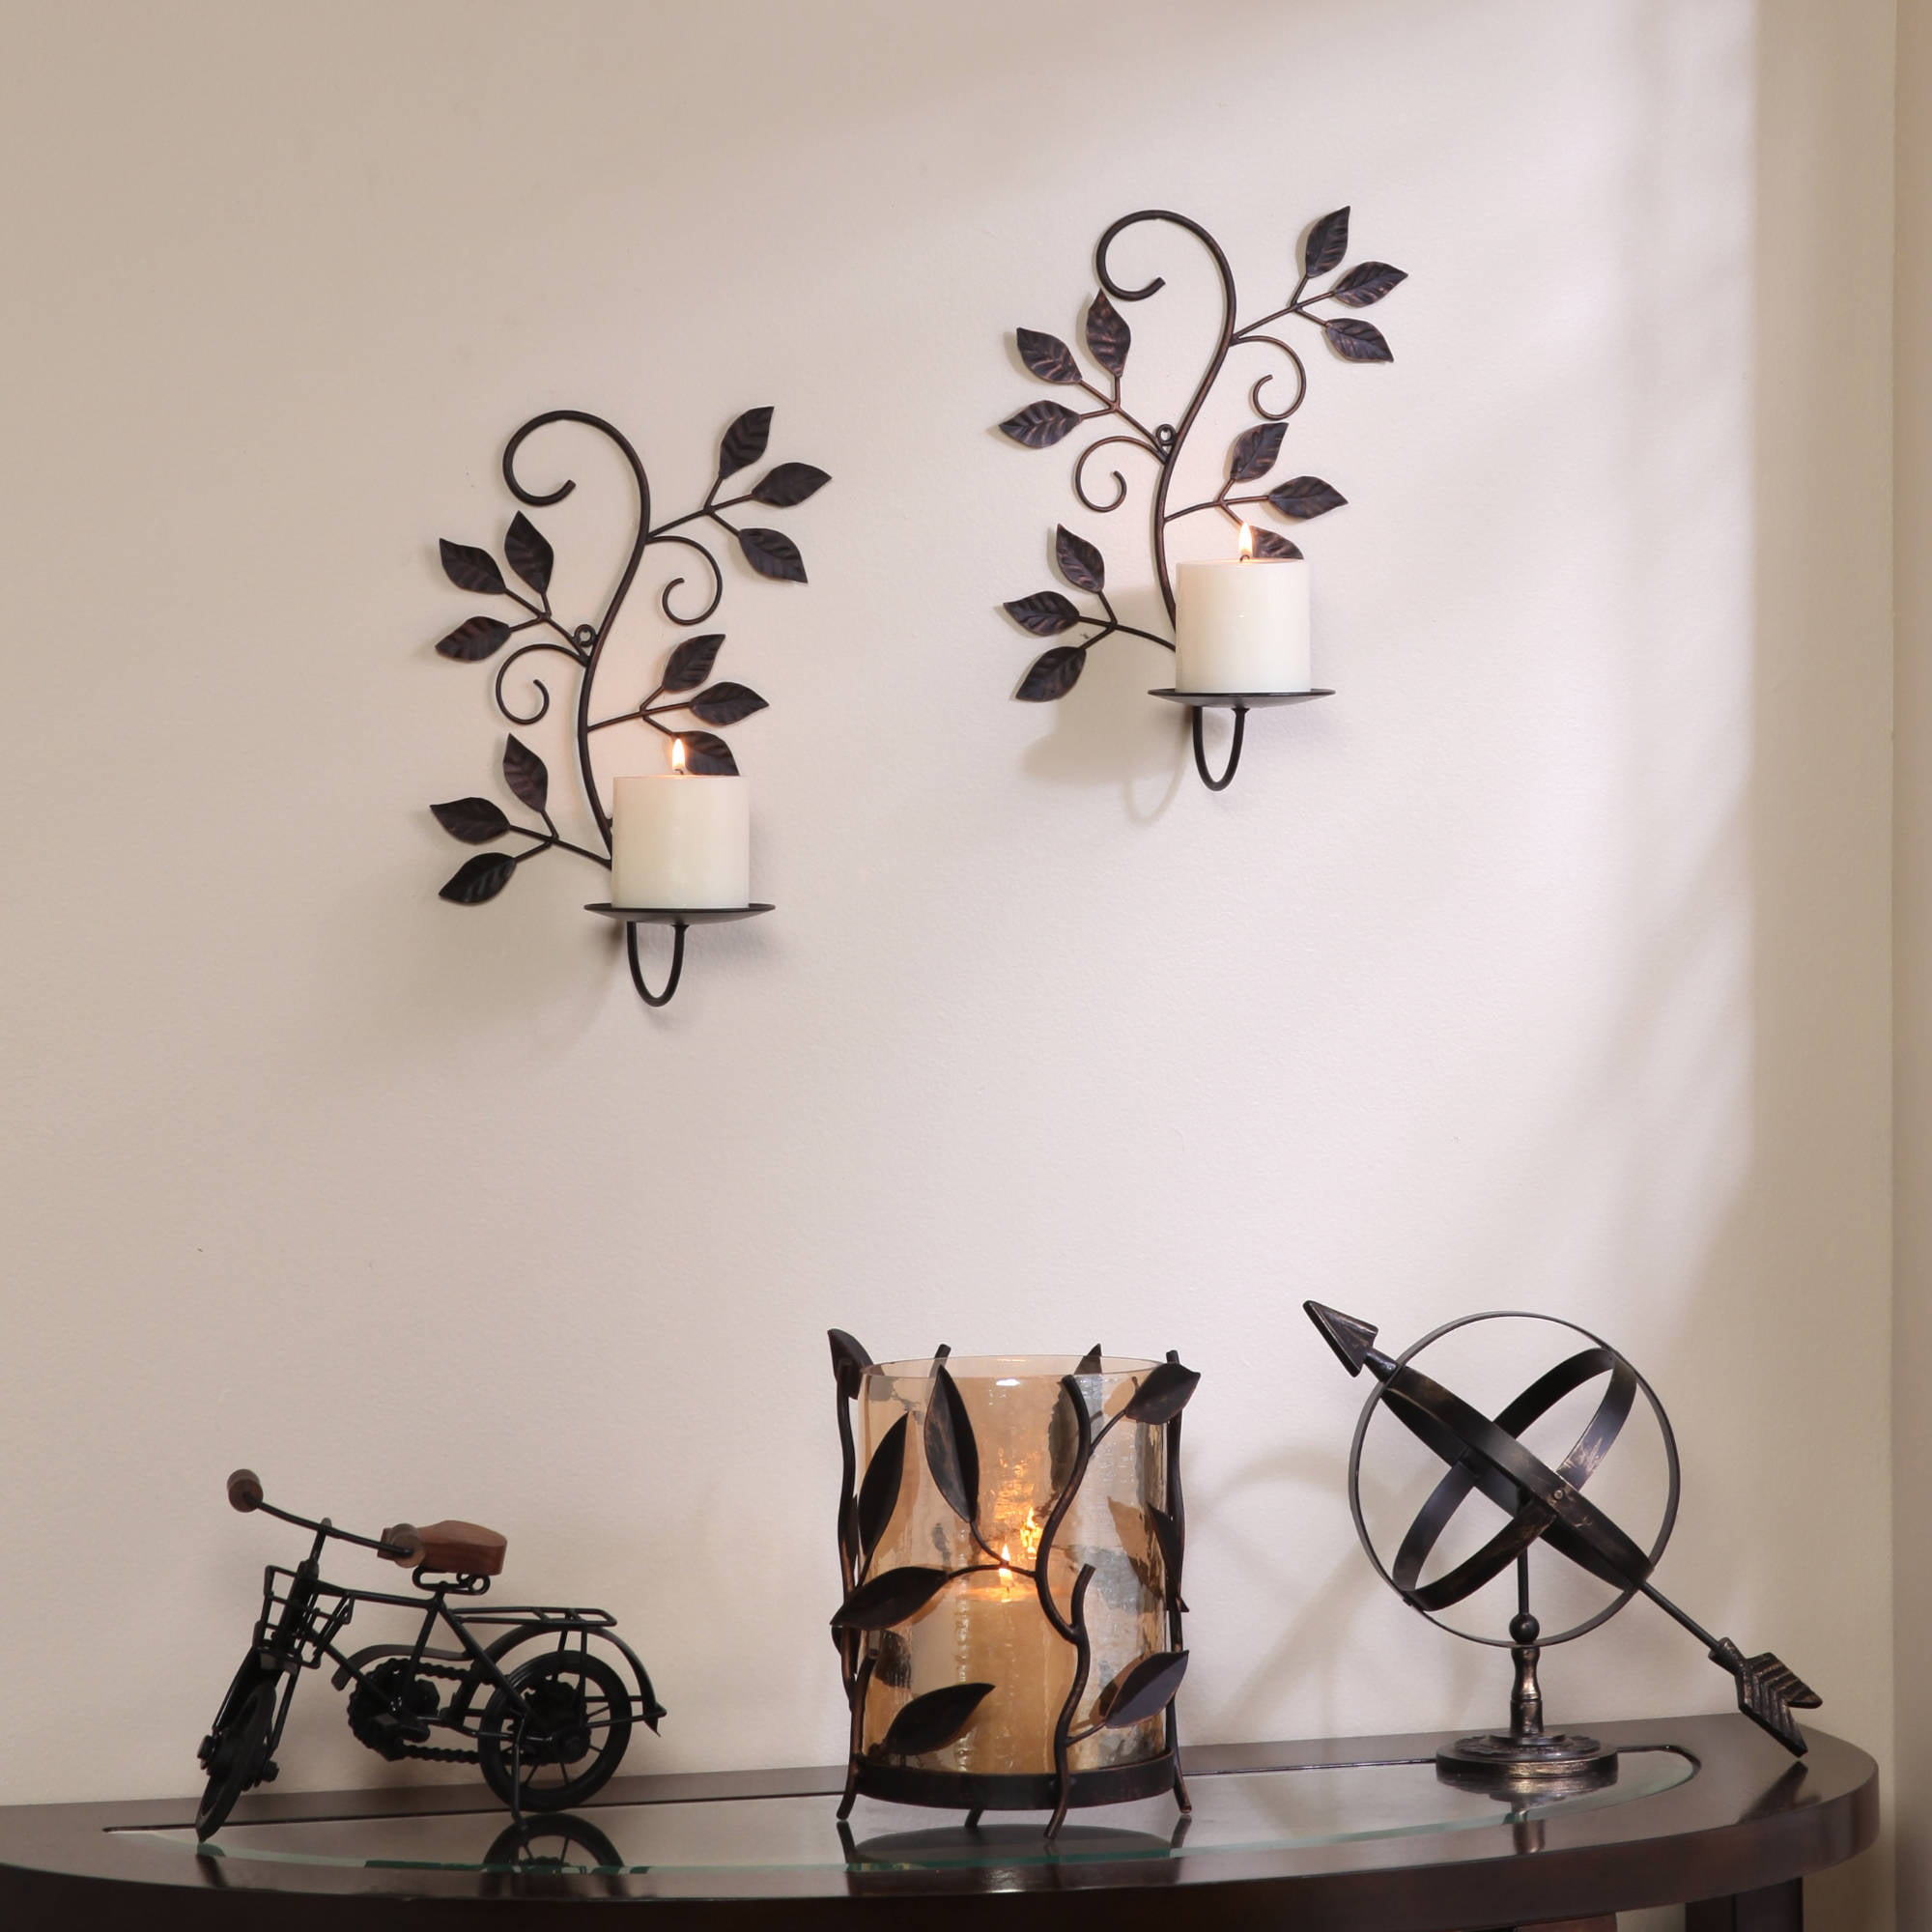 Click here to buy Better Homes and Gardens Scrolled Leaves Wall Sconce Pillar Holders, Set of 2.